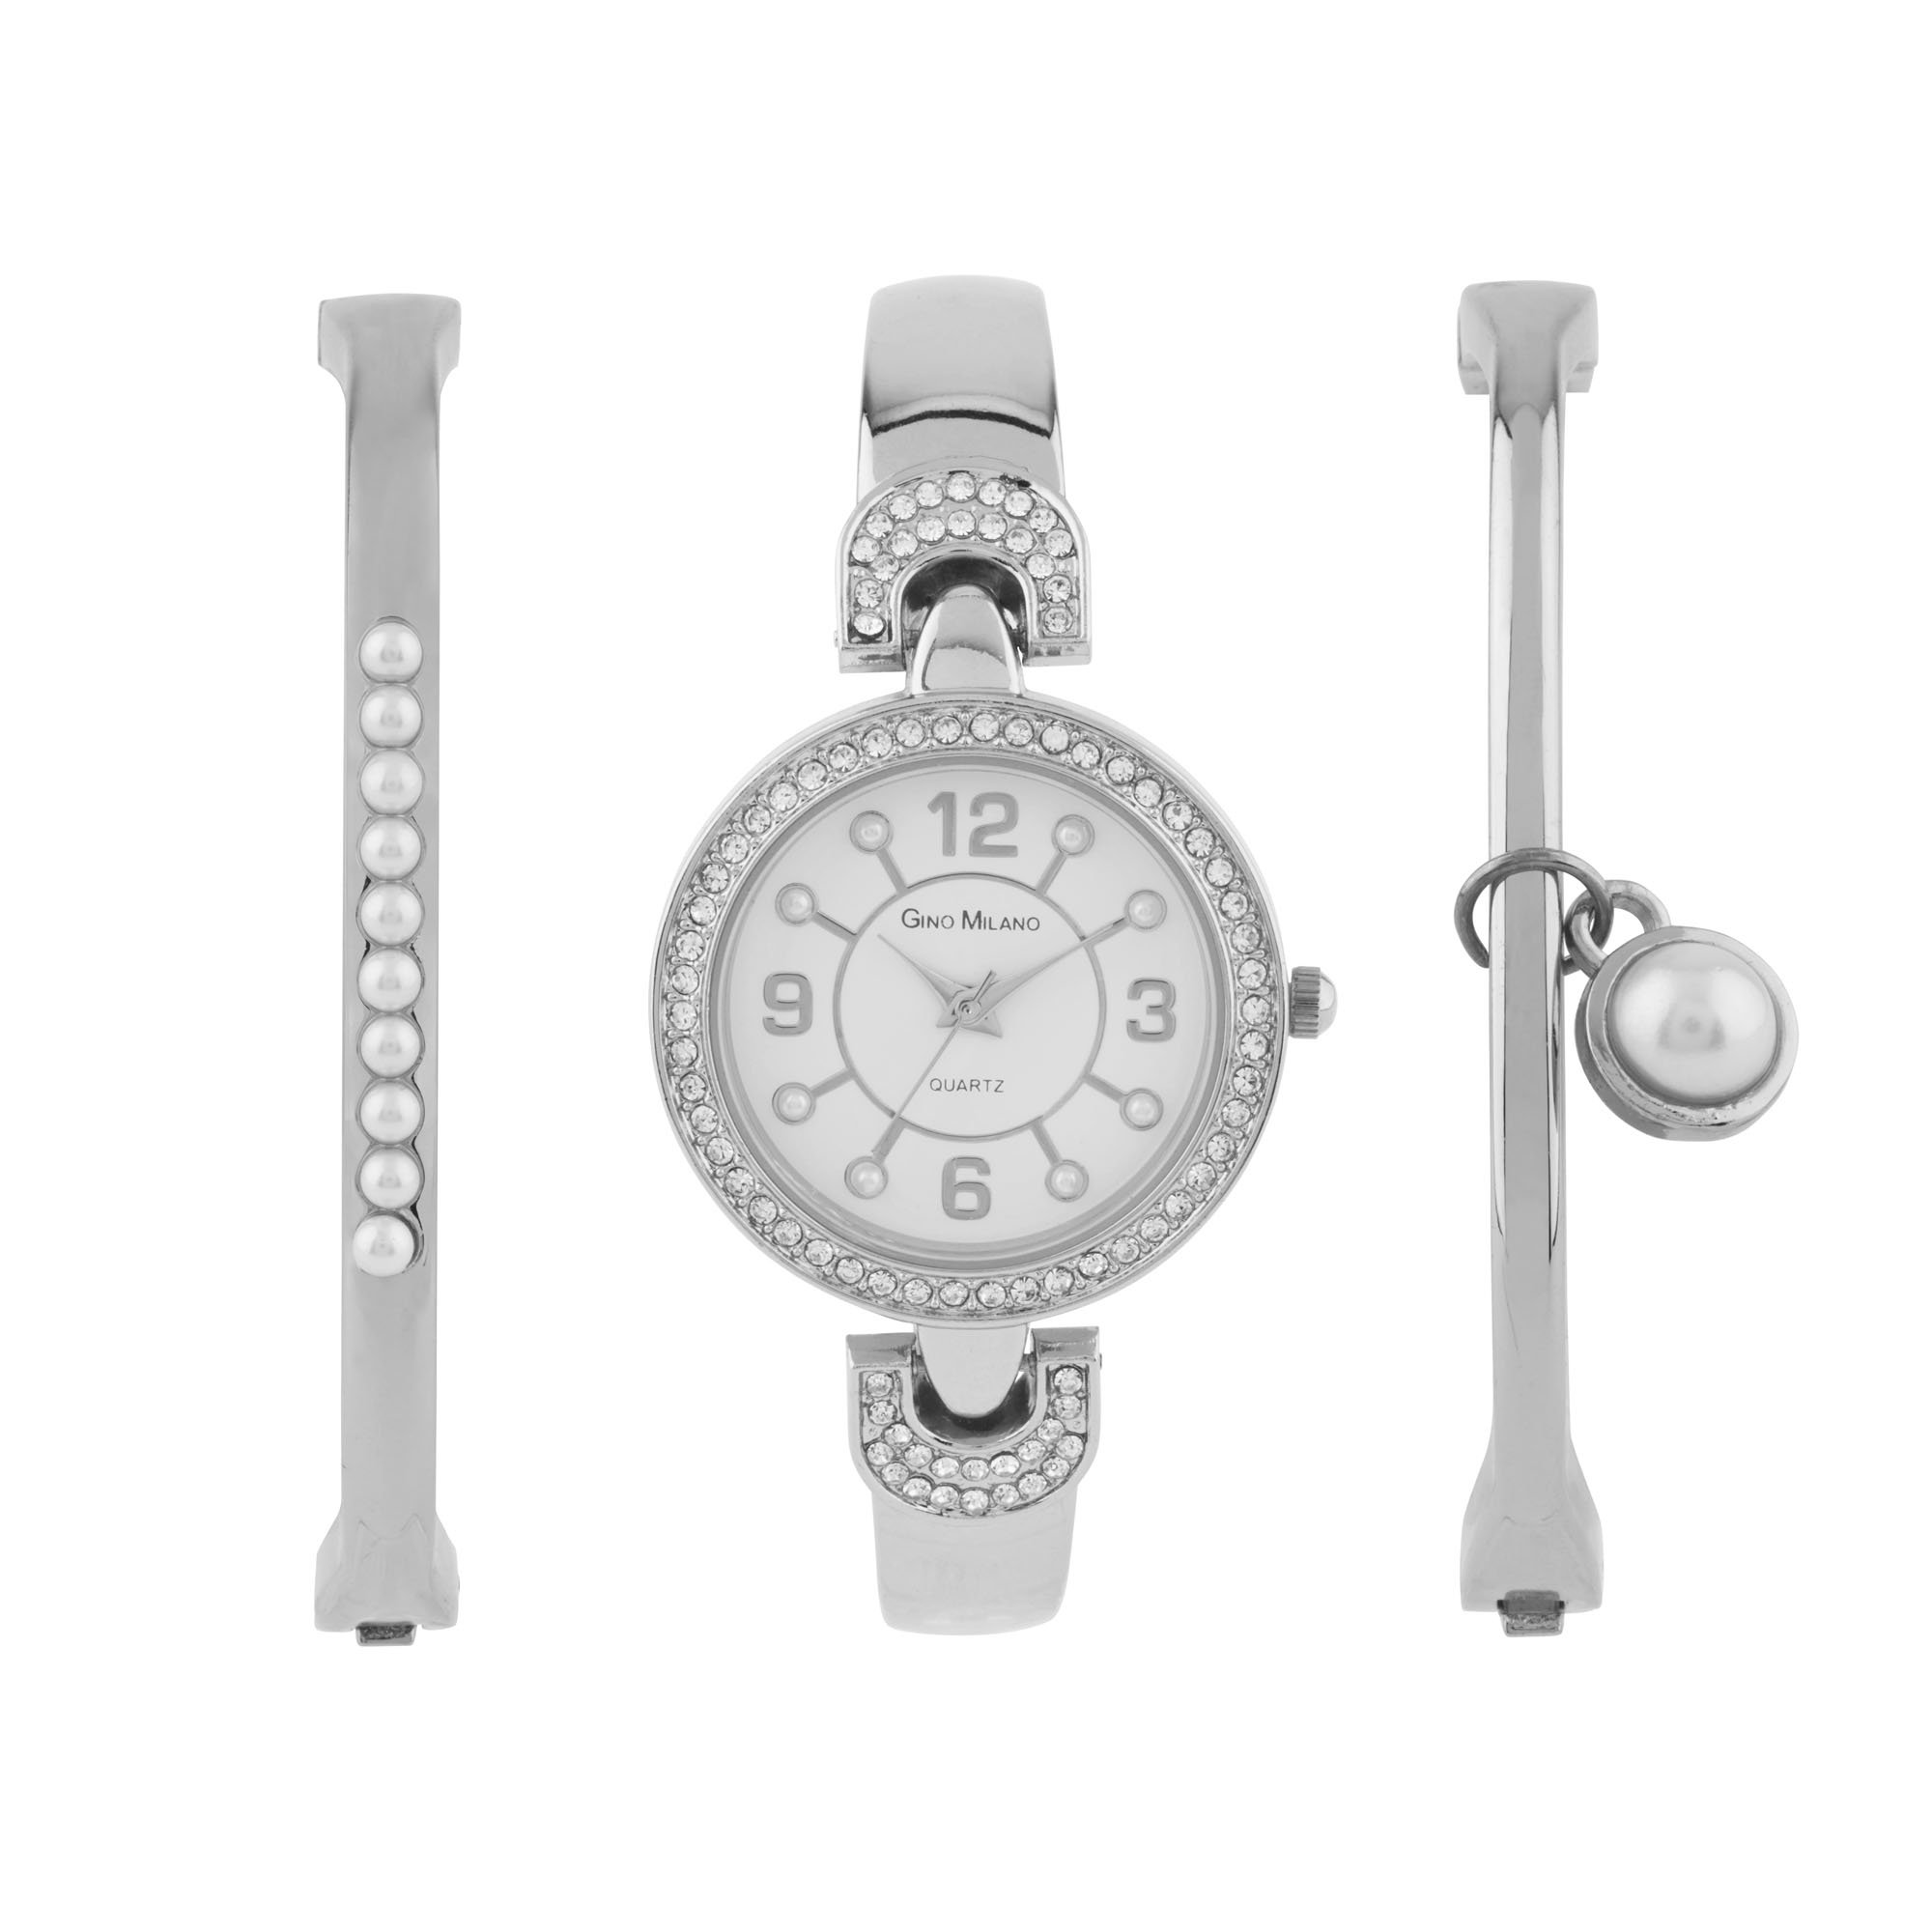 Ladies Gold Watch with Matching Pearl Bracelets Gift Set (Silver)